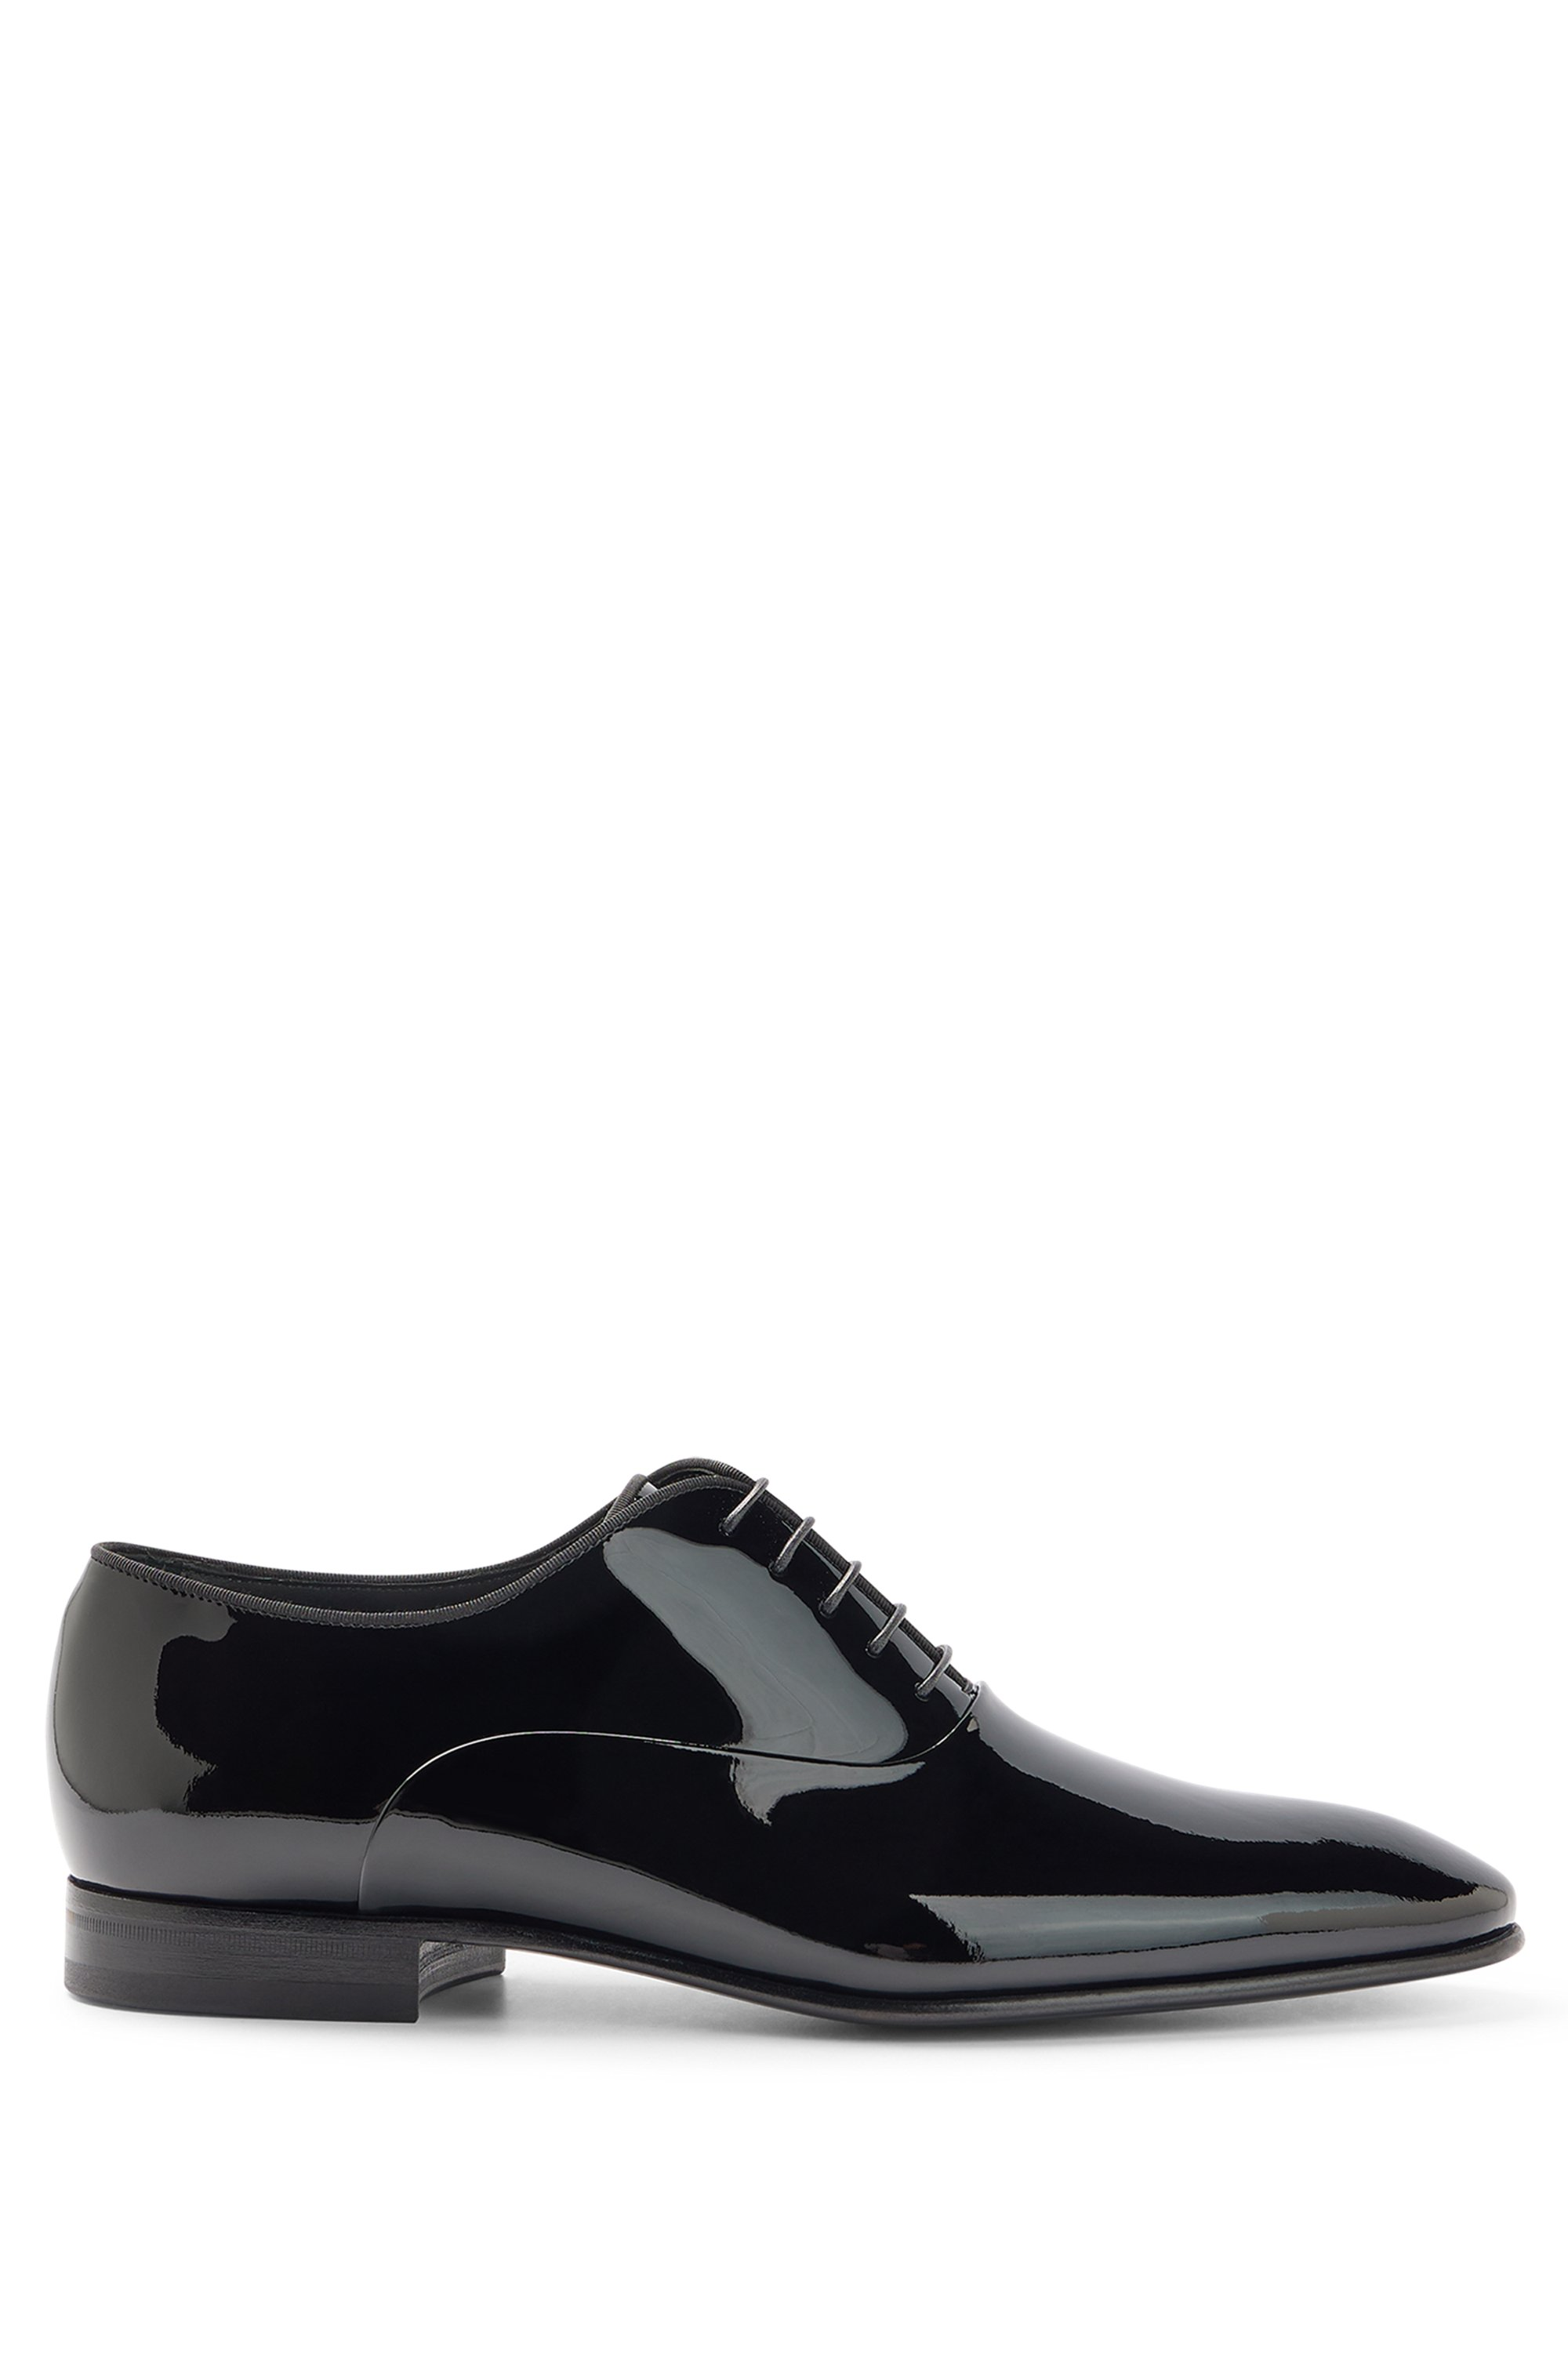 Oxford shoes in patent leather with grosgrain piping